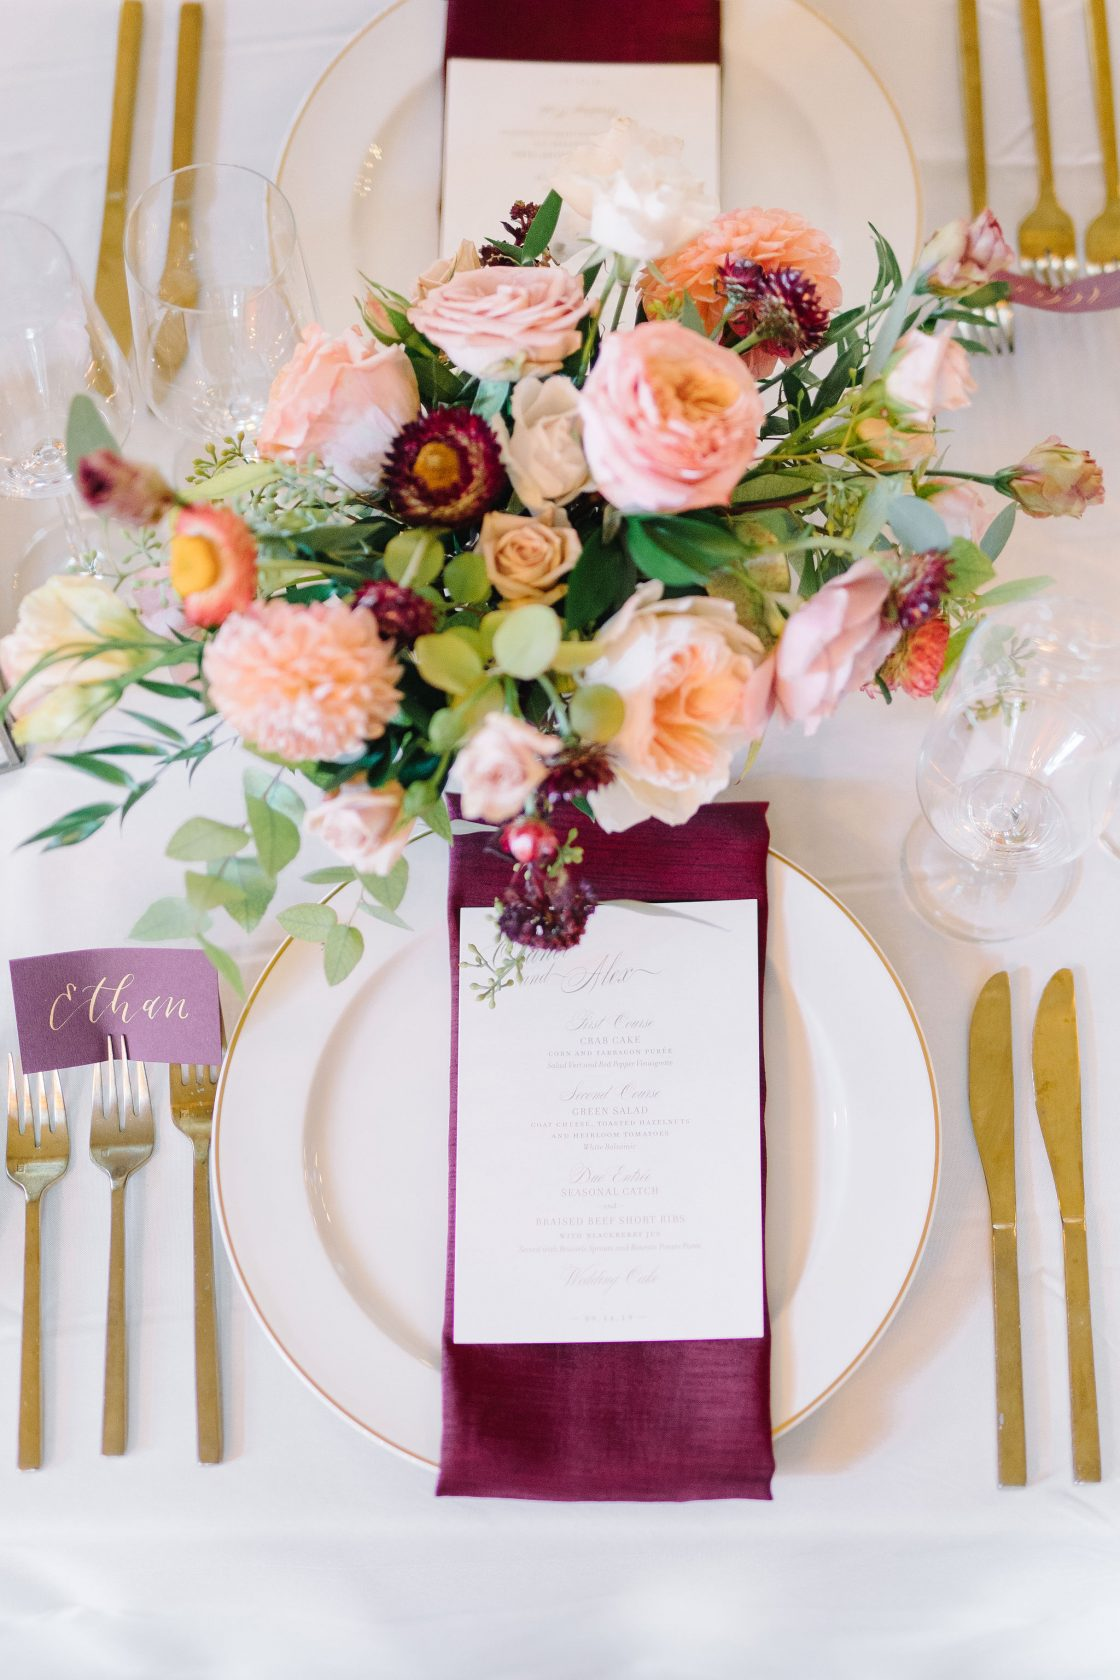 Peach and Burgundy Wedding Place Setting